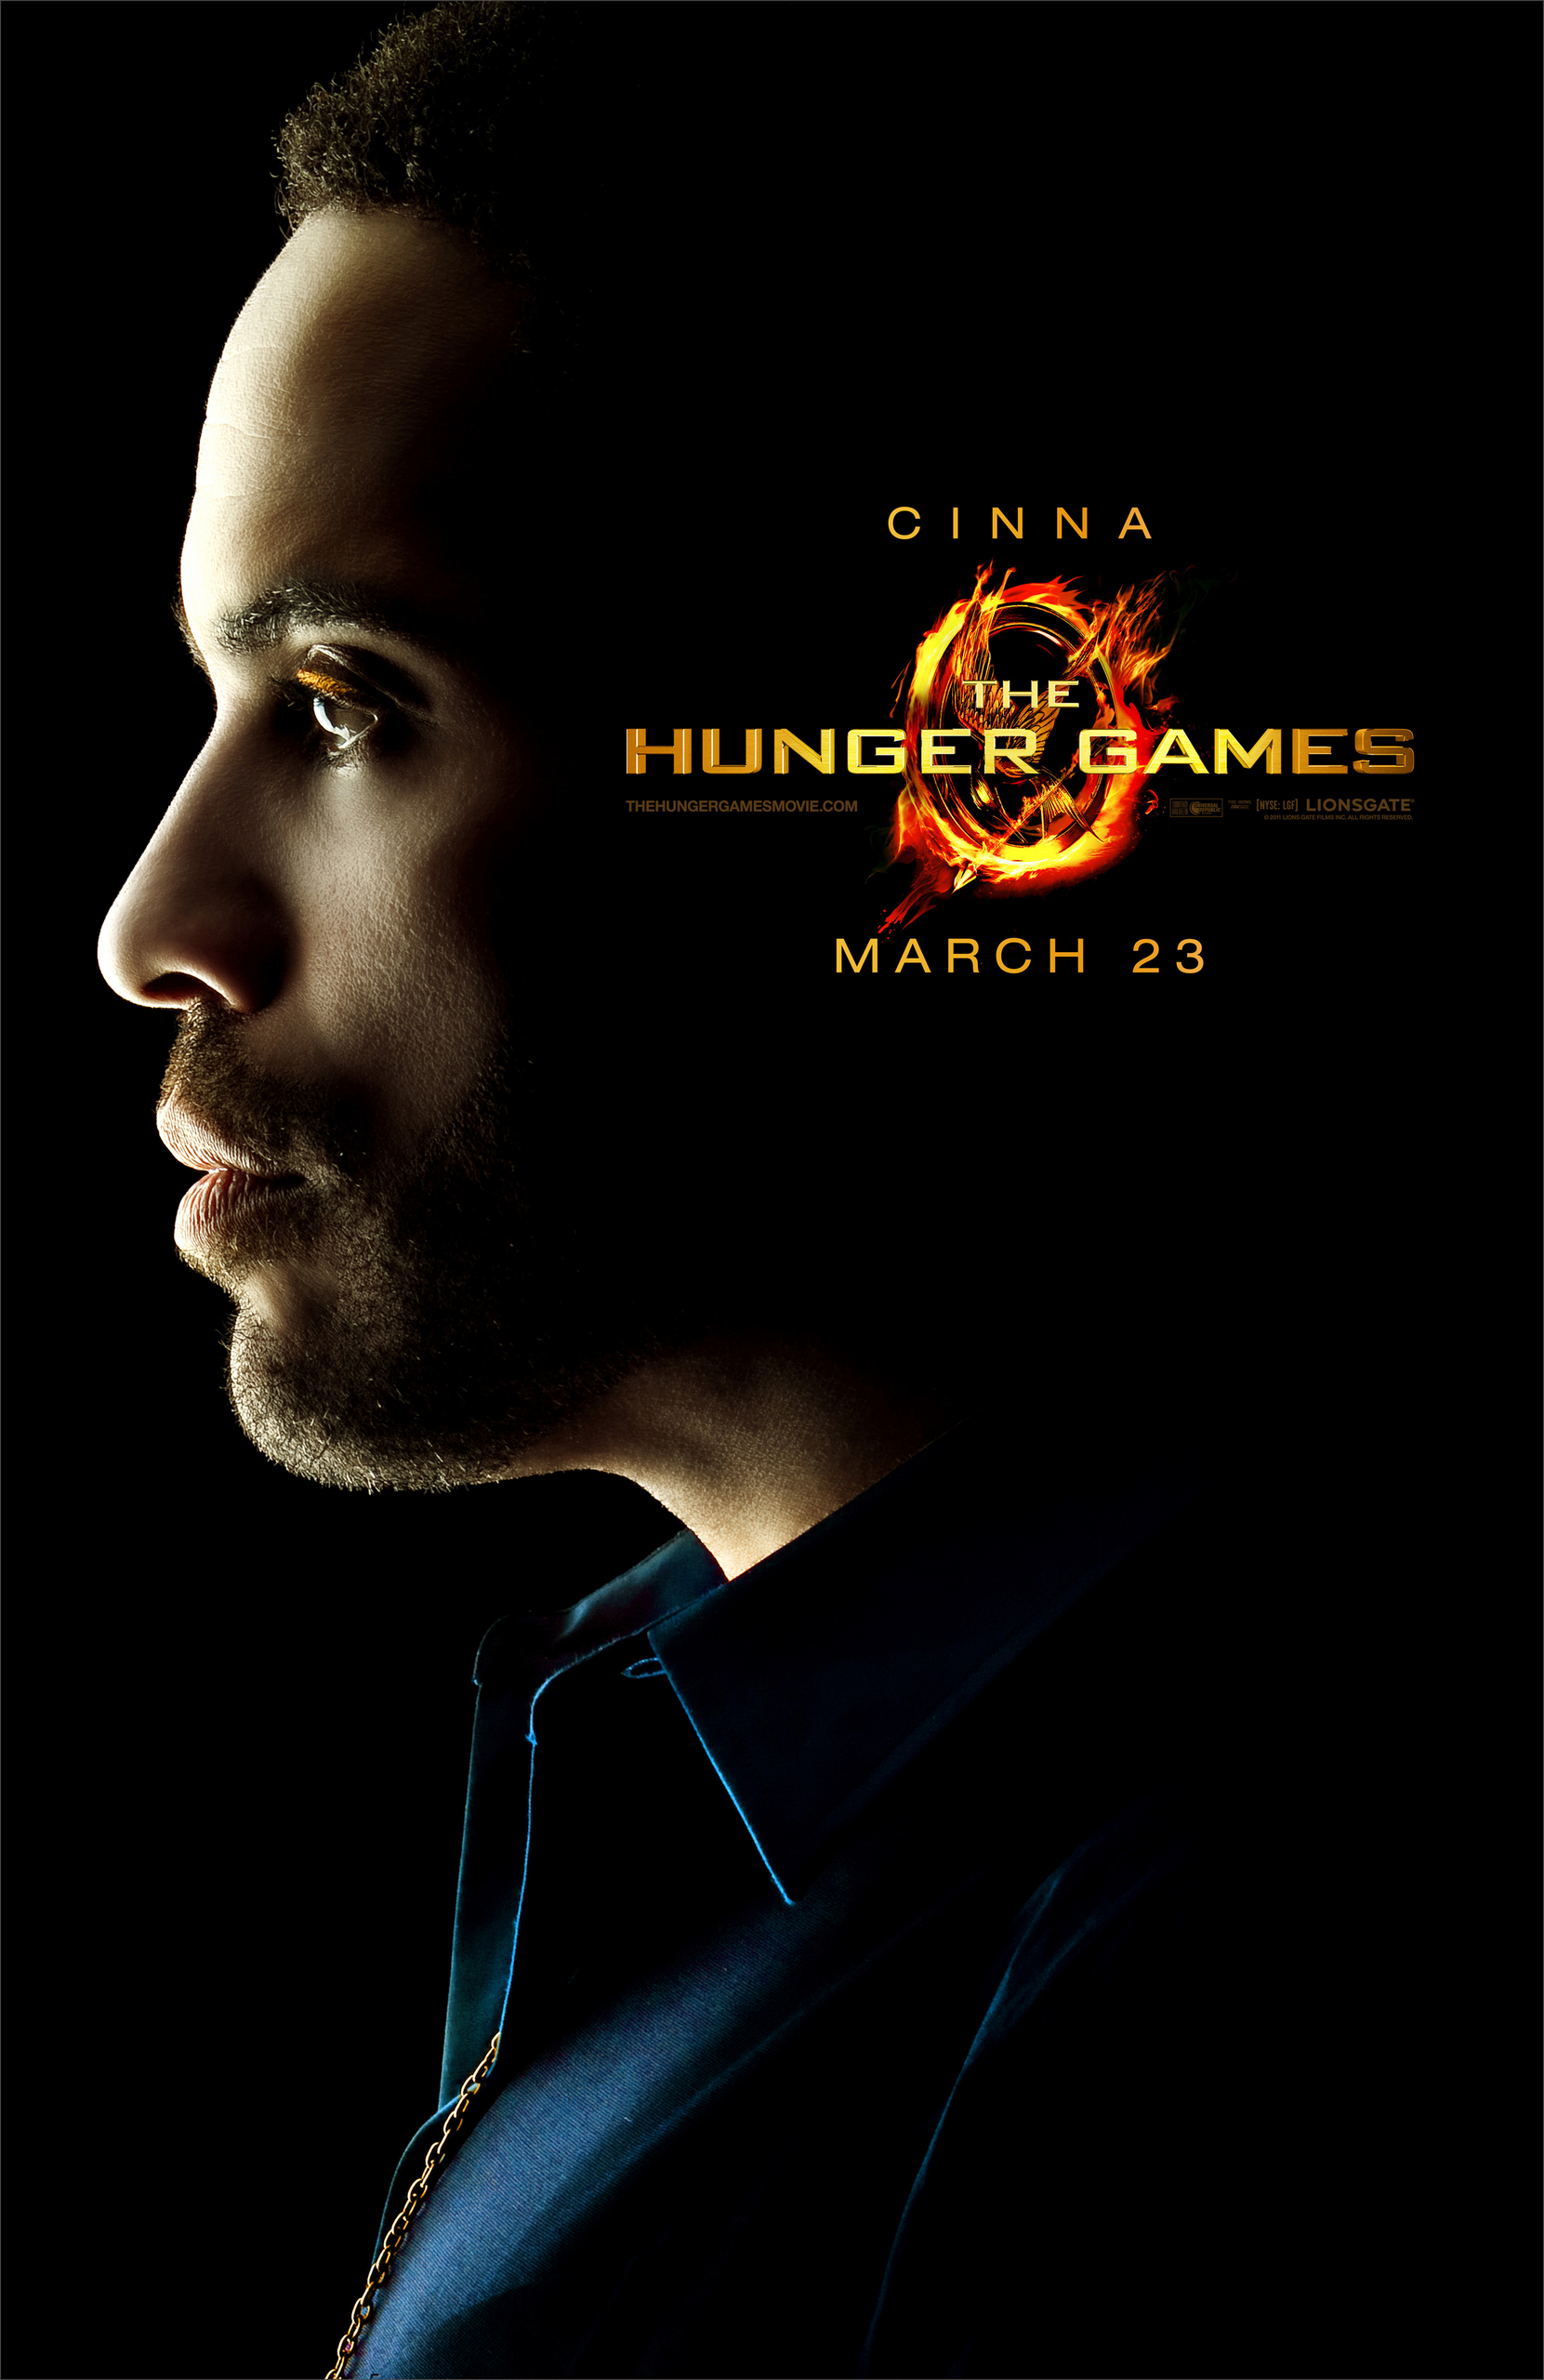 Cinna images the hunger games character poster cinna hd cinna images the hunger games character poster cinna hd wallpaper and background photos voltagebd Choice Image